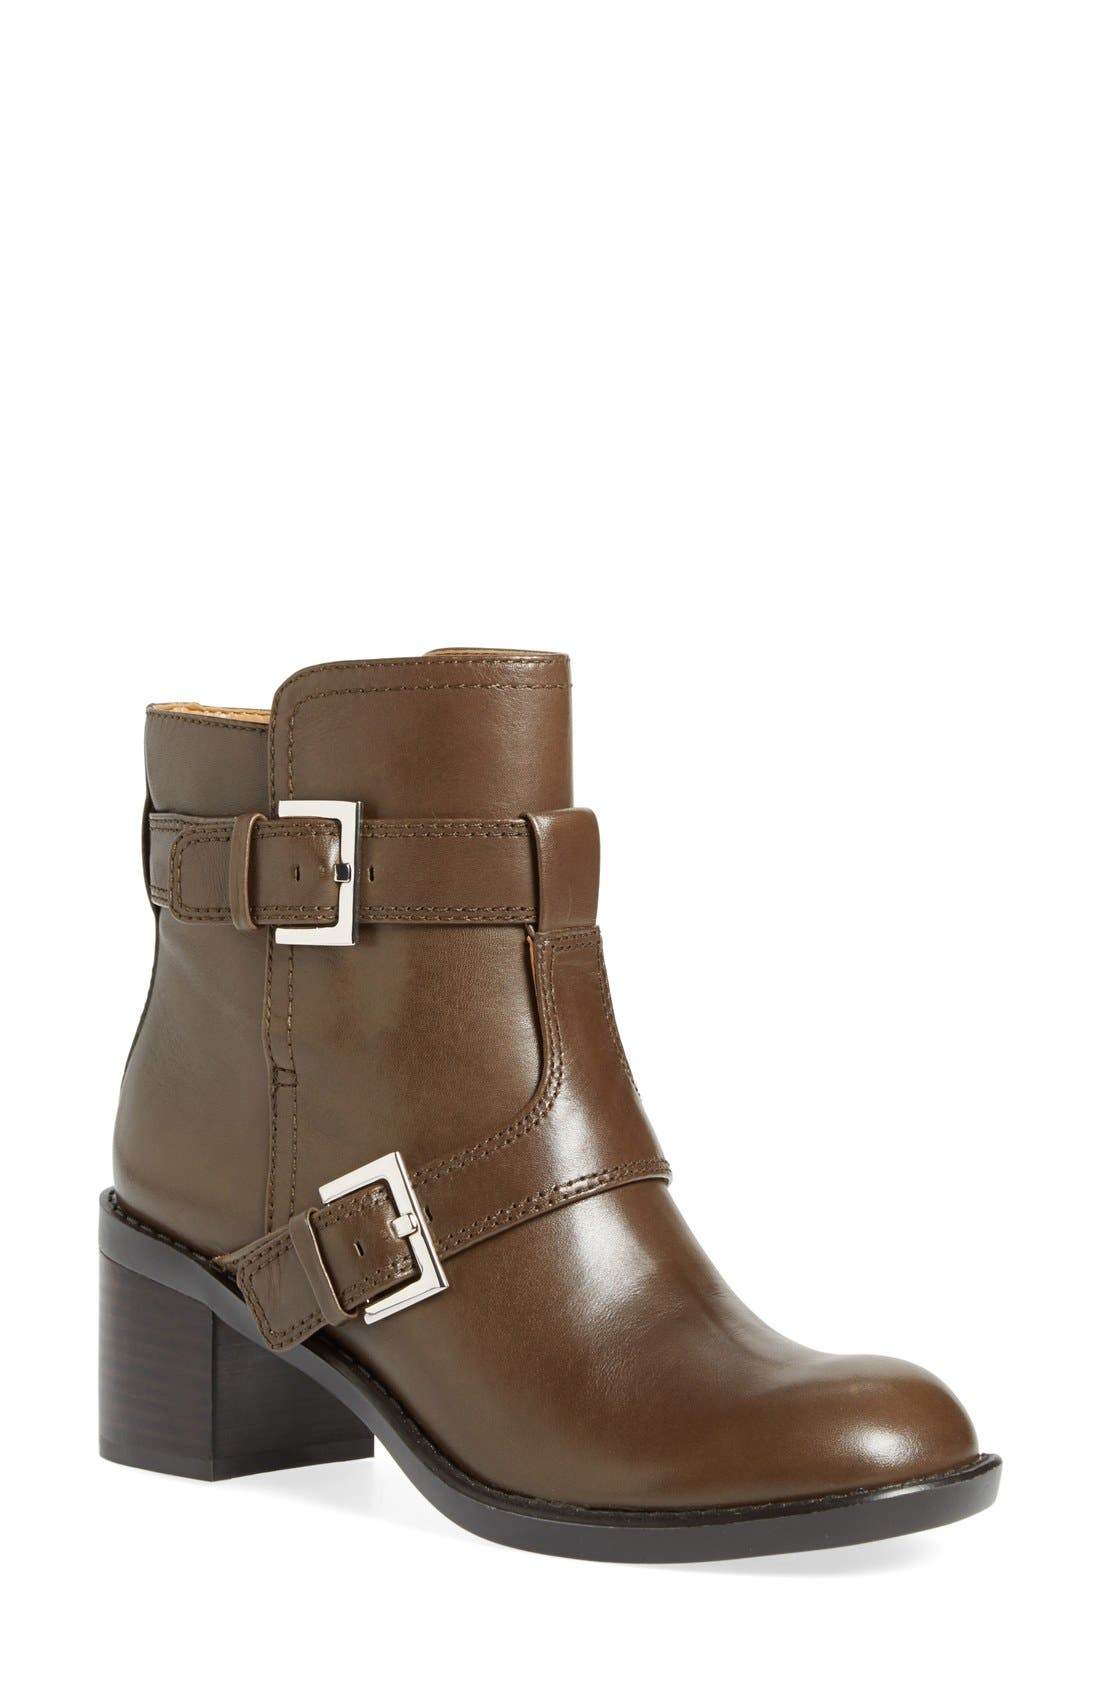 Main Image - Nine West 'Lorena' Buckle Mid Boot (Women)